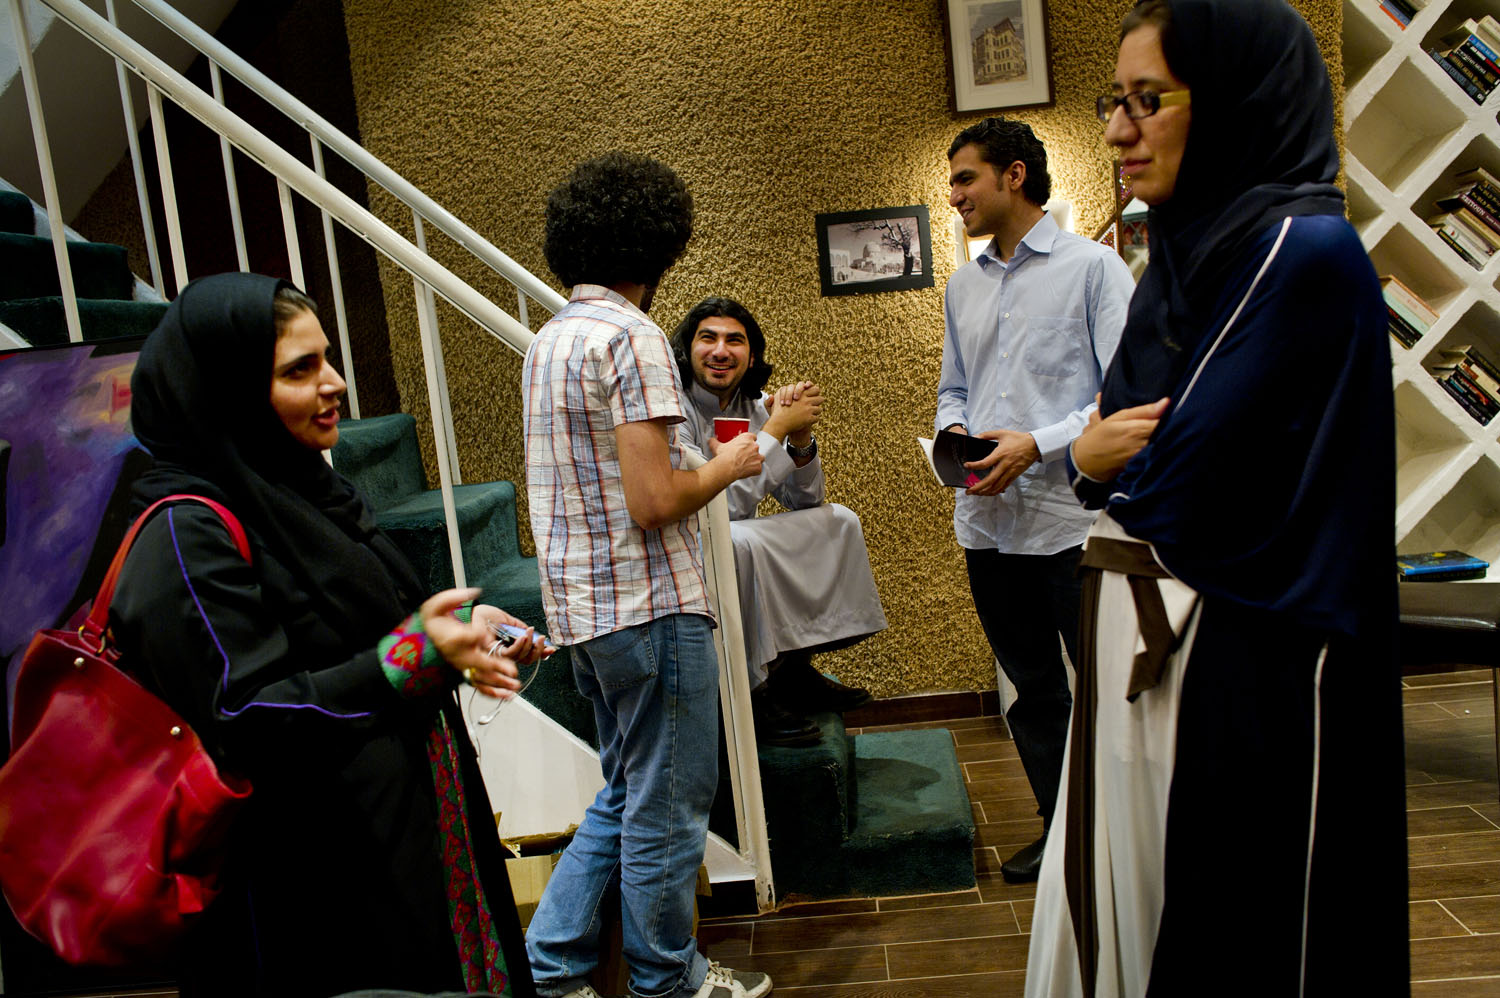 Young Saudis gather in Bridges bookstore—one of the few bookstores in the country, in Jeddah, Saudi Arabia, June 14, 2011. While bookstores like this are common throughout most of the rest of the world, they are extremely rare in Saudi Arabia, and provide young people with a place to study, have philosophical and intellectual discussions, and to meet for book clubs in Jeddah.